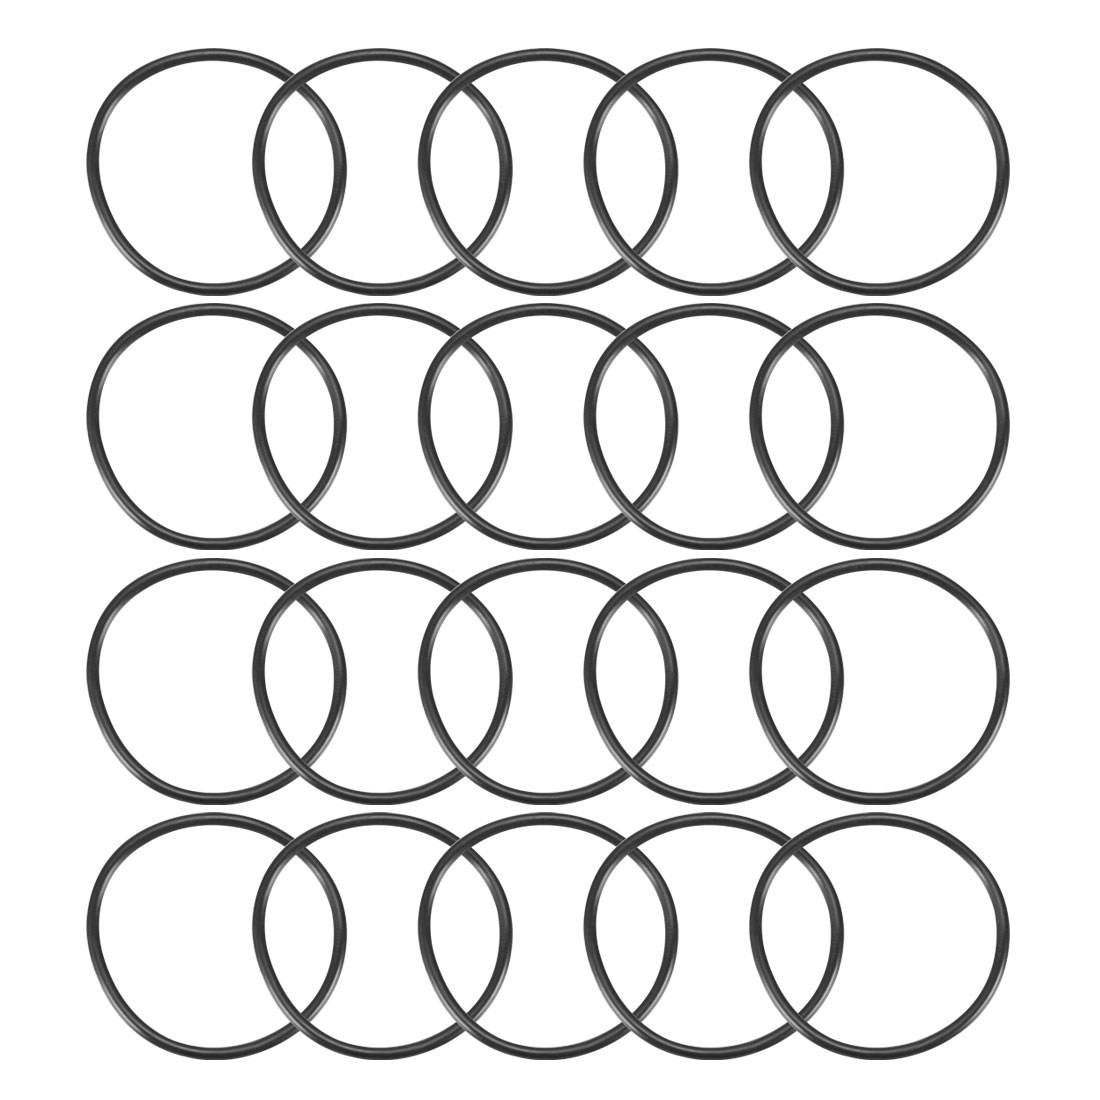 20Pcs Black 37mm Dia 2mm Thickness Nitrile Rubber O Ring NBR Sealing Grommets